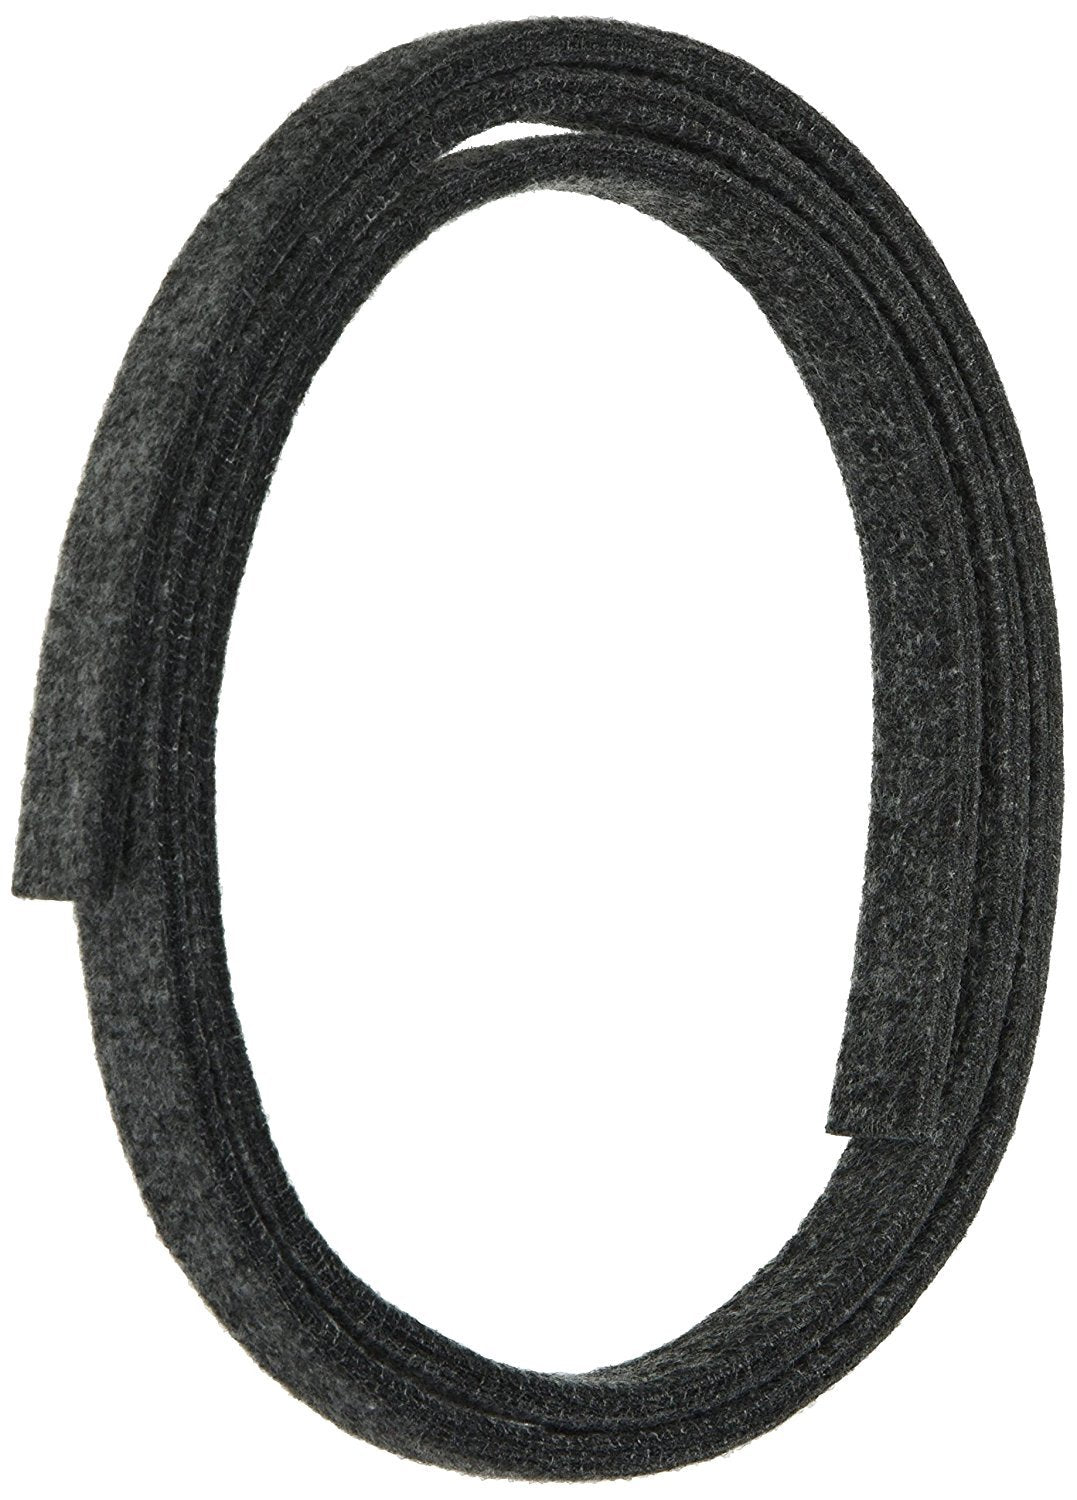 General Electric DWSR483GA2WW Front Felt Seal Replacement